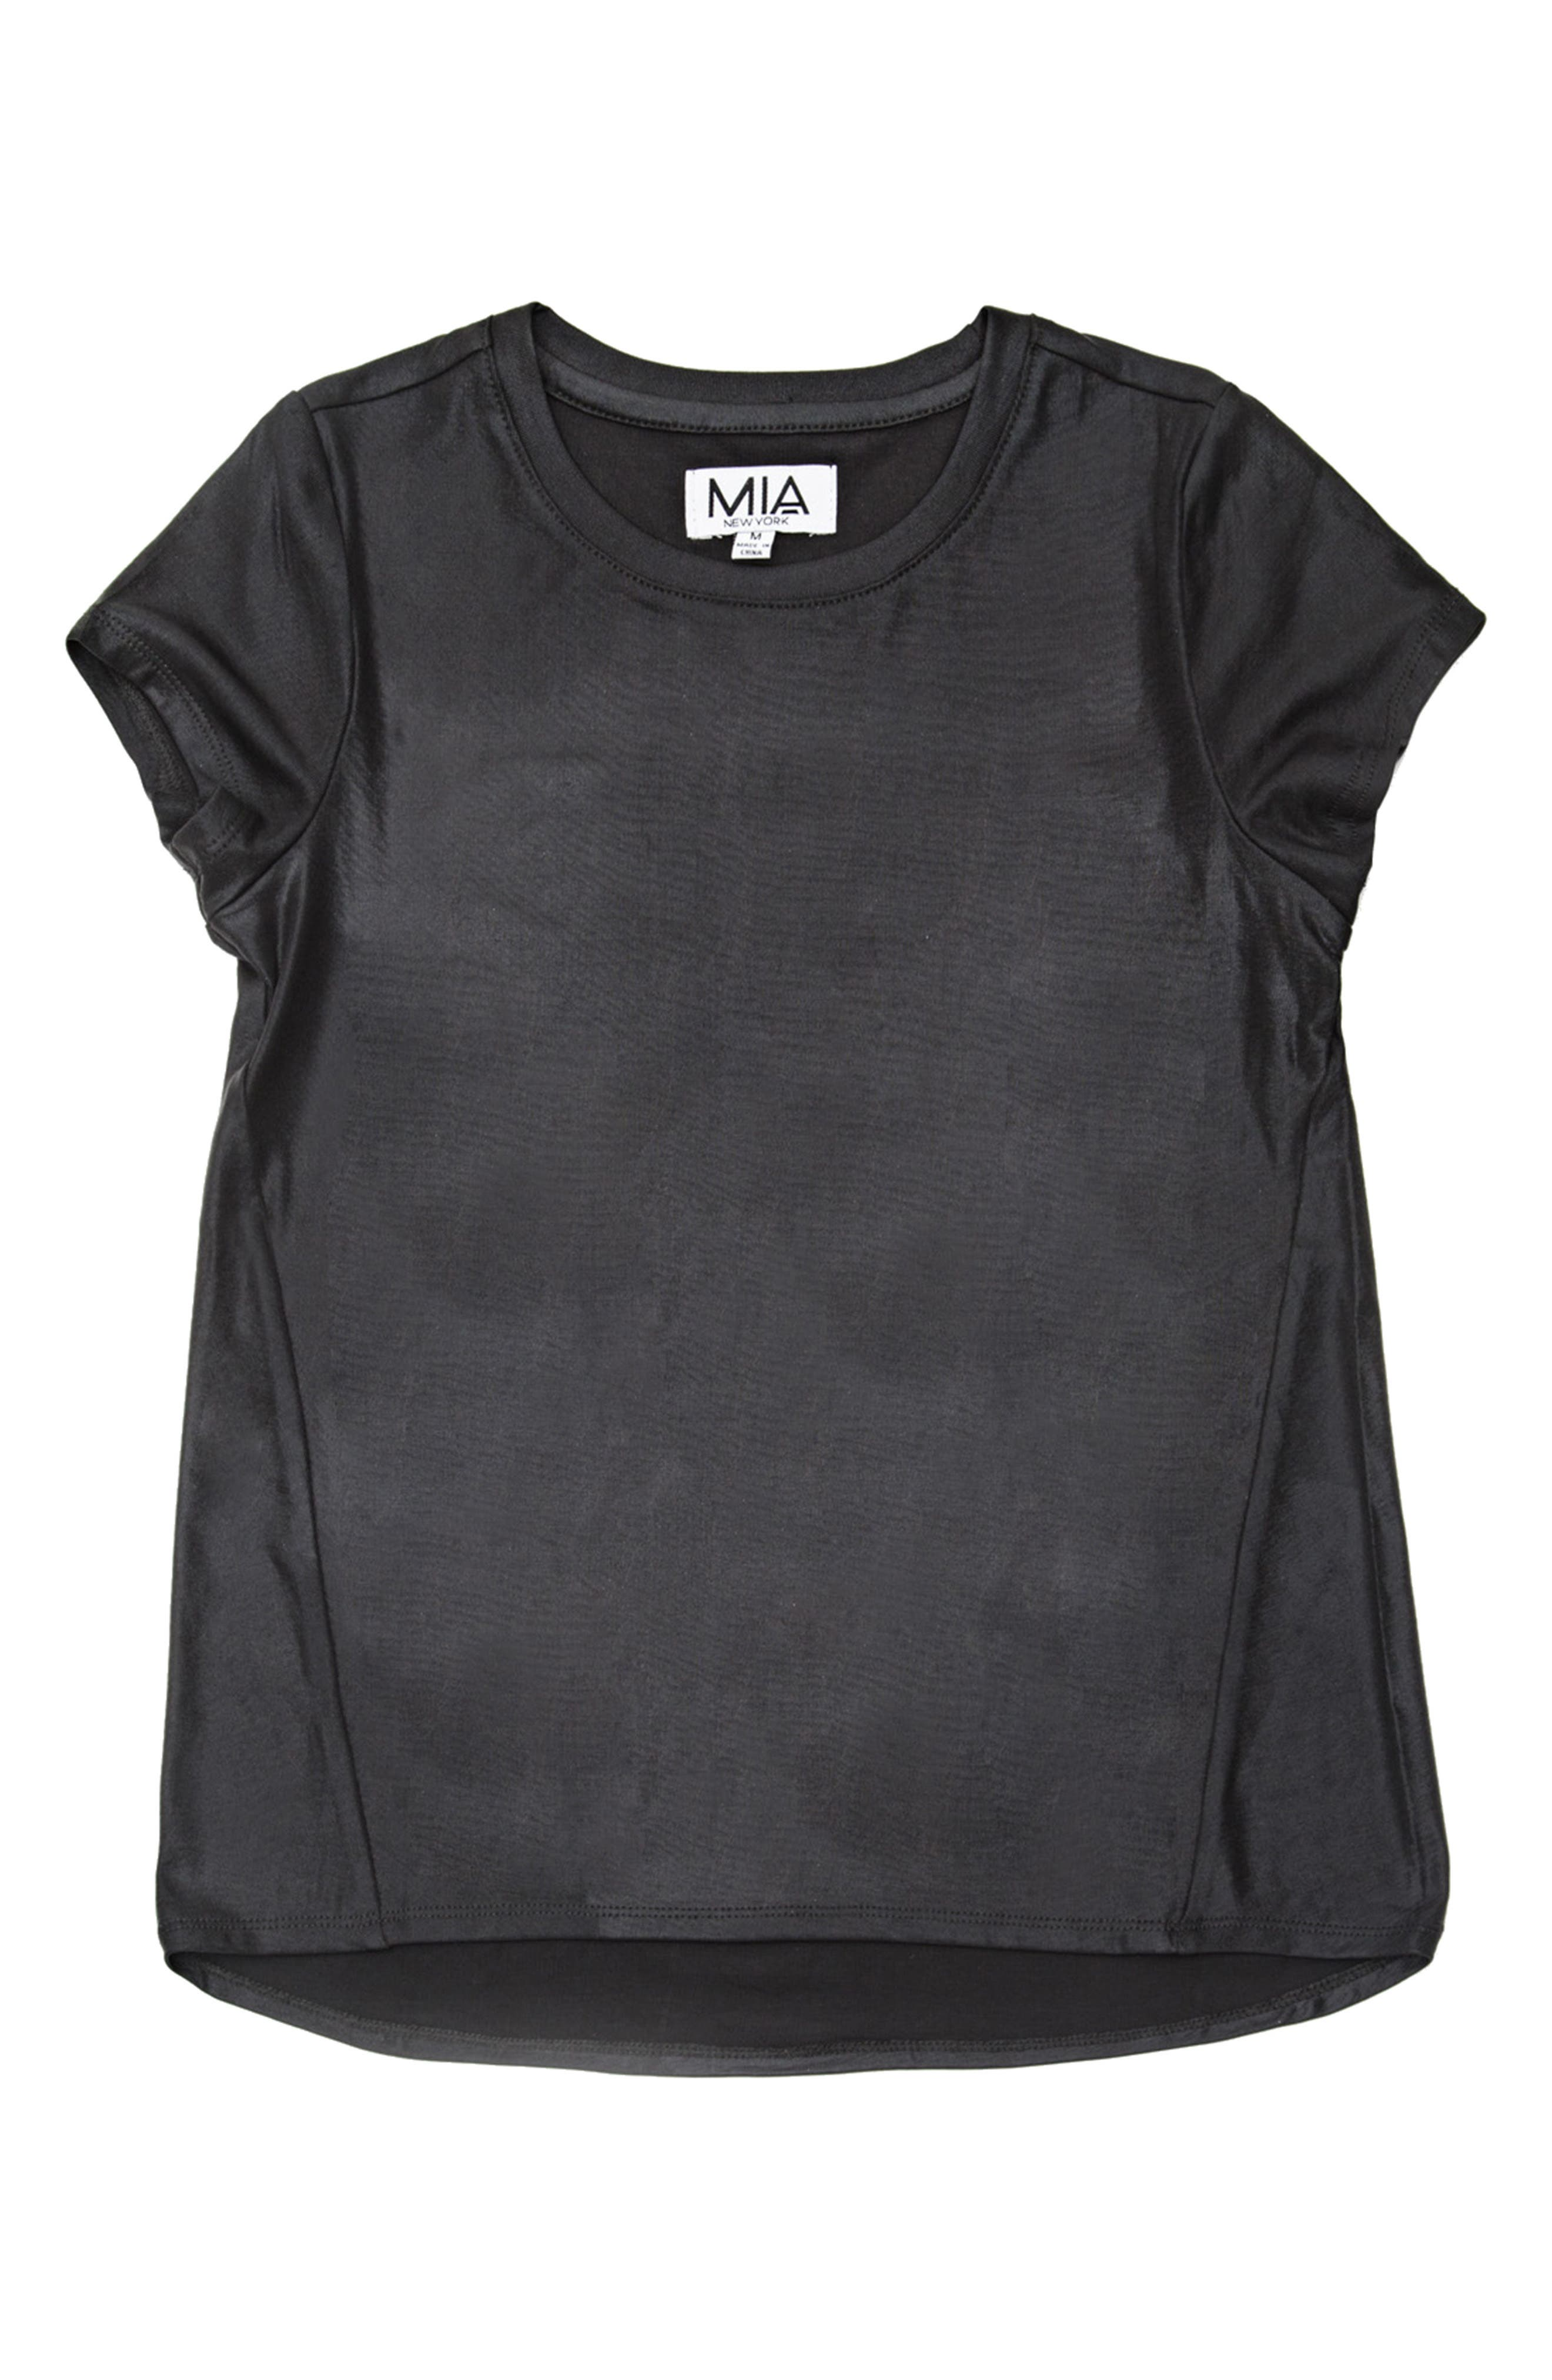 Mia New York Metallic High/Low Tee (Big Girls)